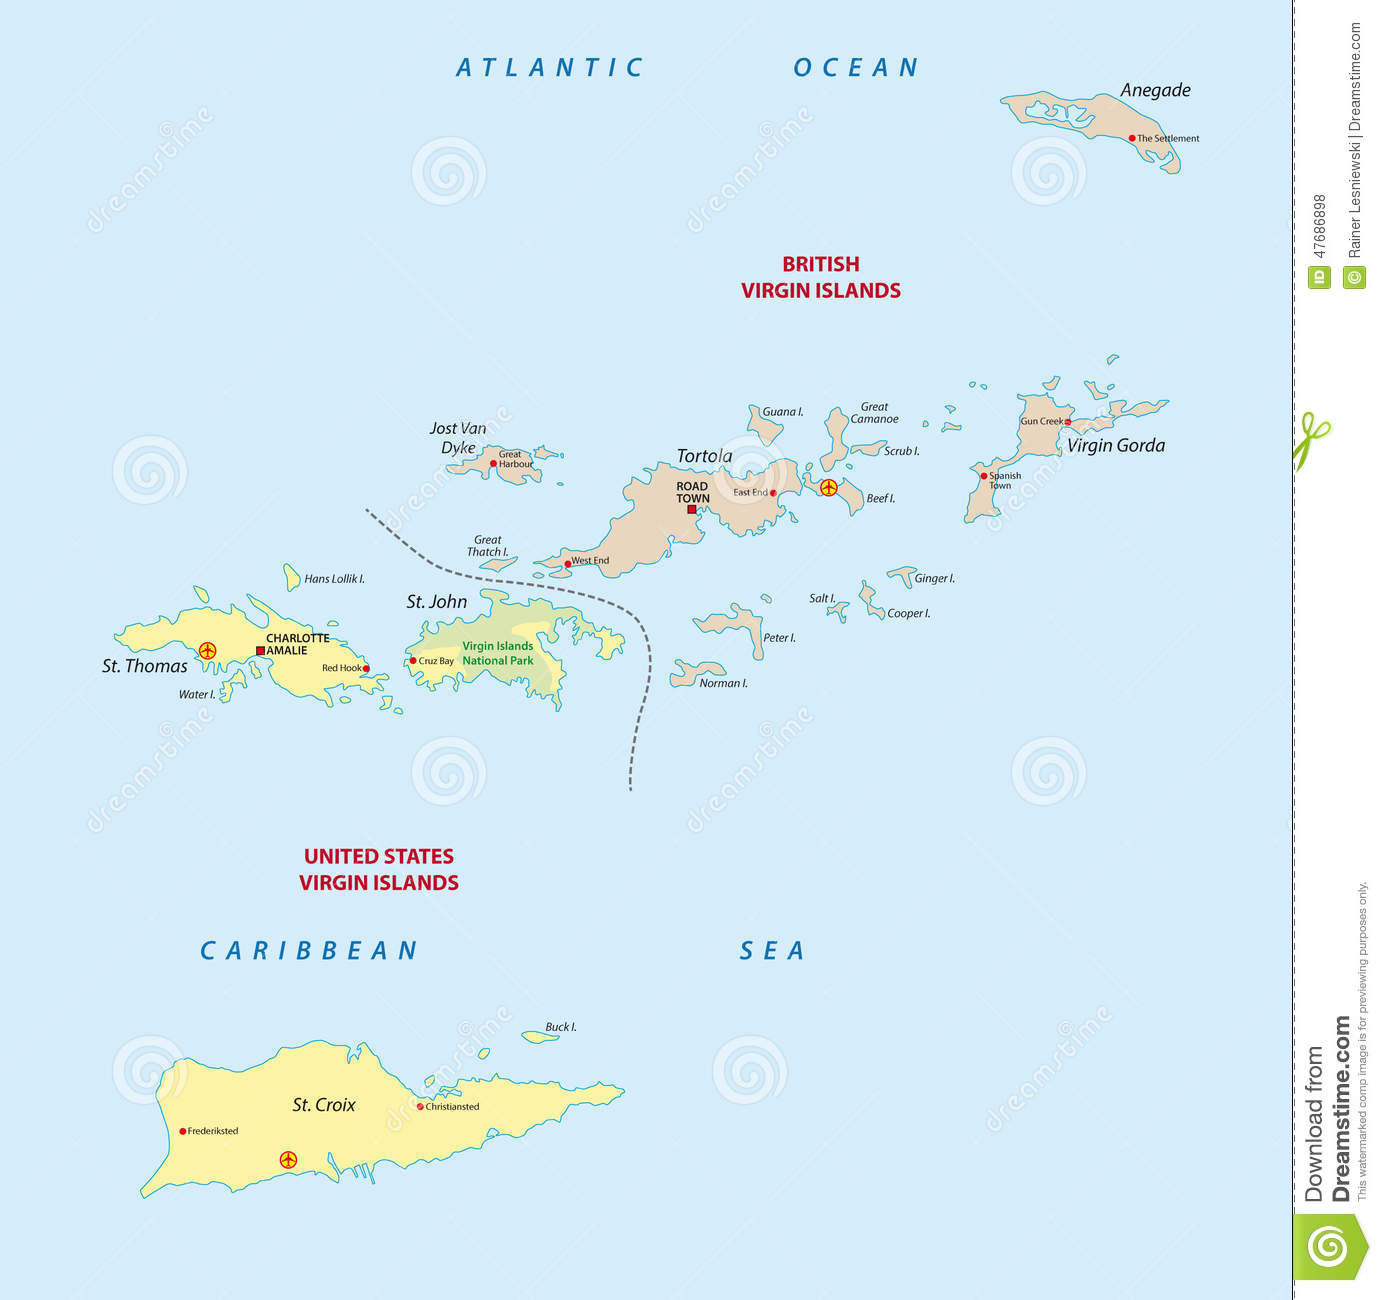 Virgin islands map stock illustration. Illustration of united - 47686898